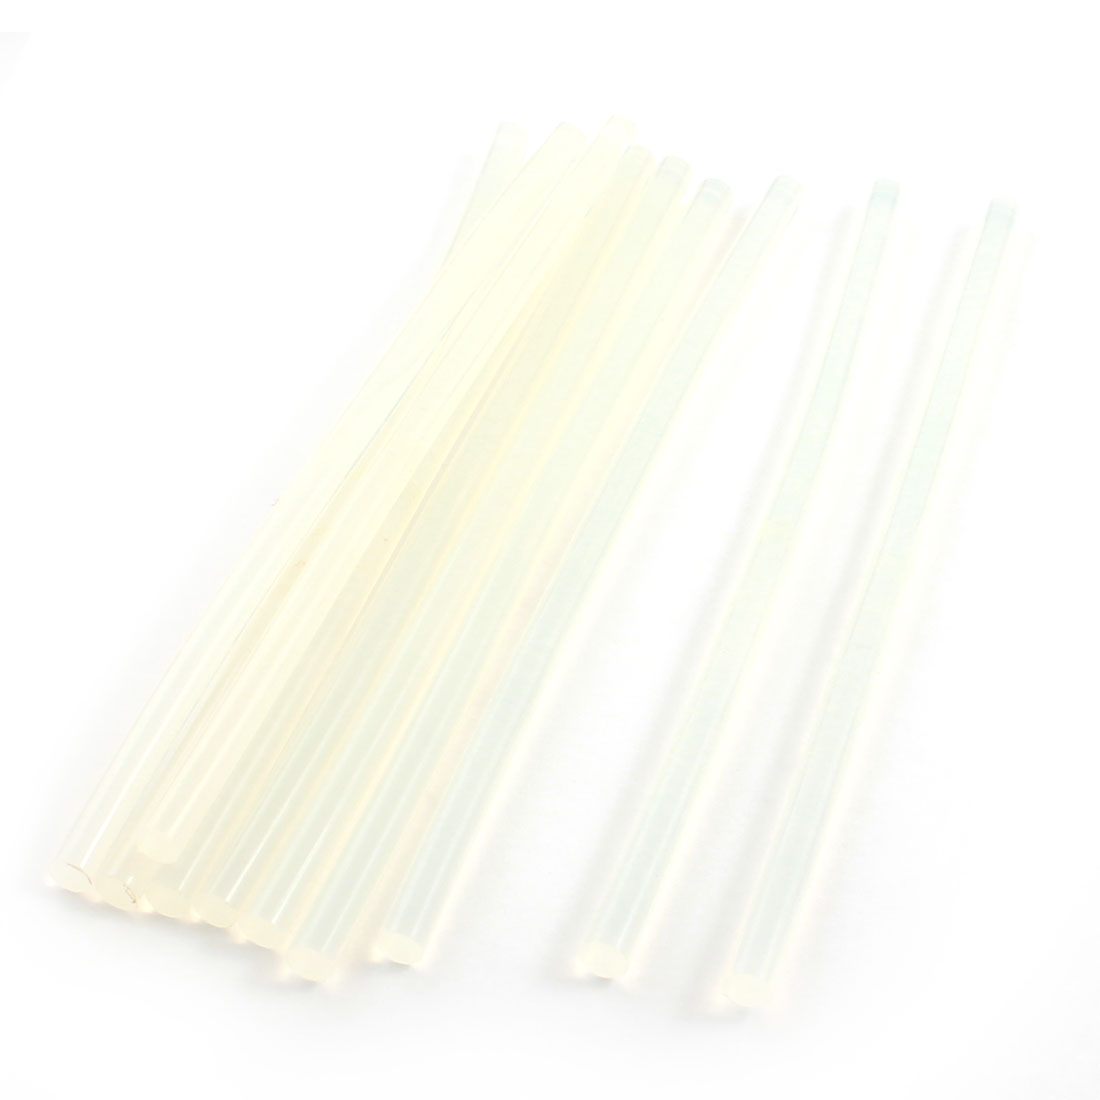 10pcs Adhesive Hot Melt Glue Sticks 7mm x 185mm for Electric Glue Gun